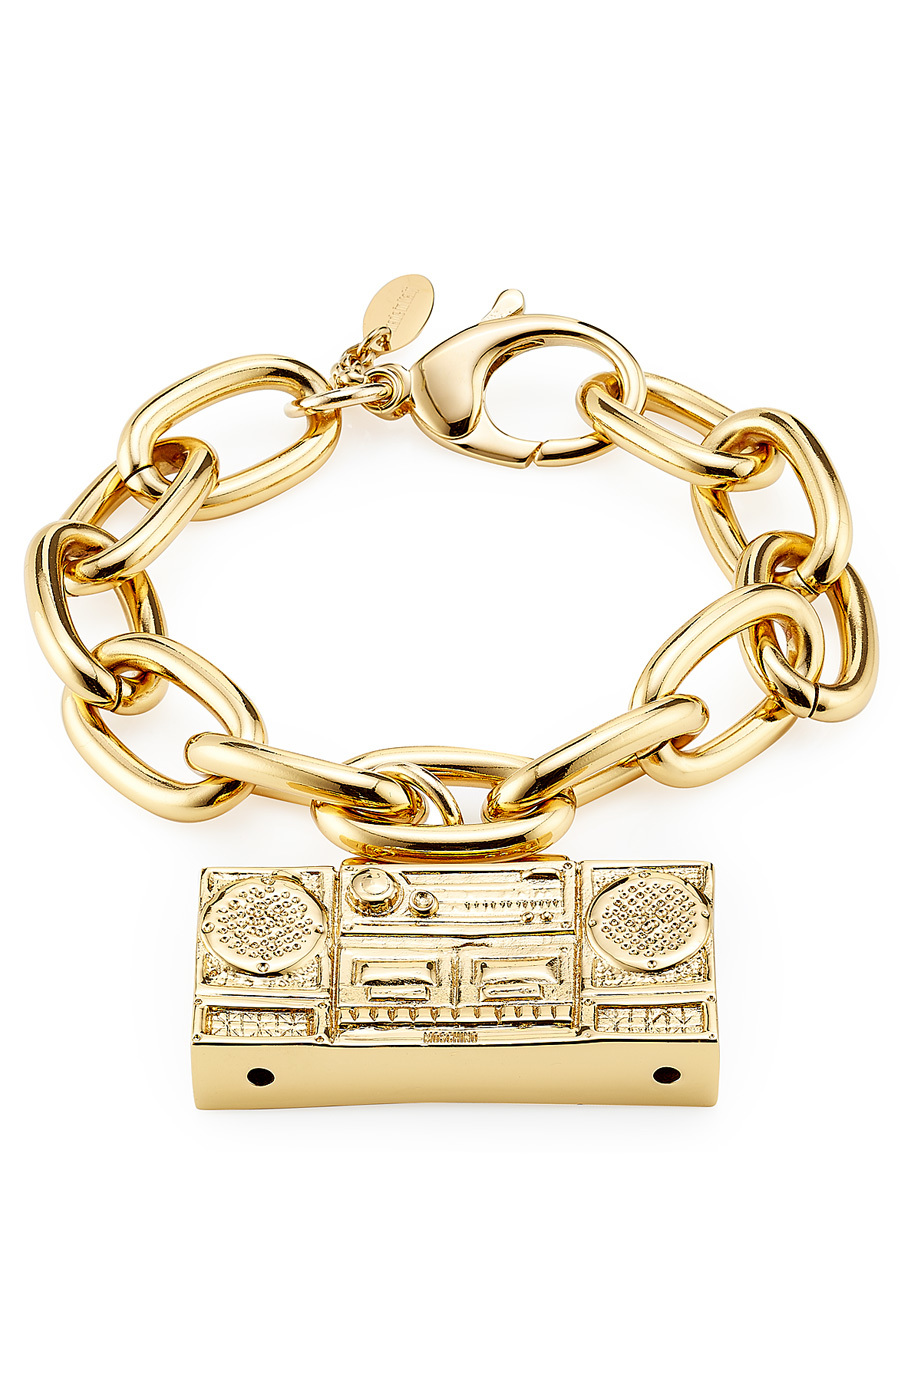 Gold Tone Brass Bracelet Gold - predominant colour: gold; occasions: casual, evening, creative work; style: chain; size: large/oversized; material: chain/metal; finish: plain; season: a/w 2015